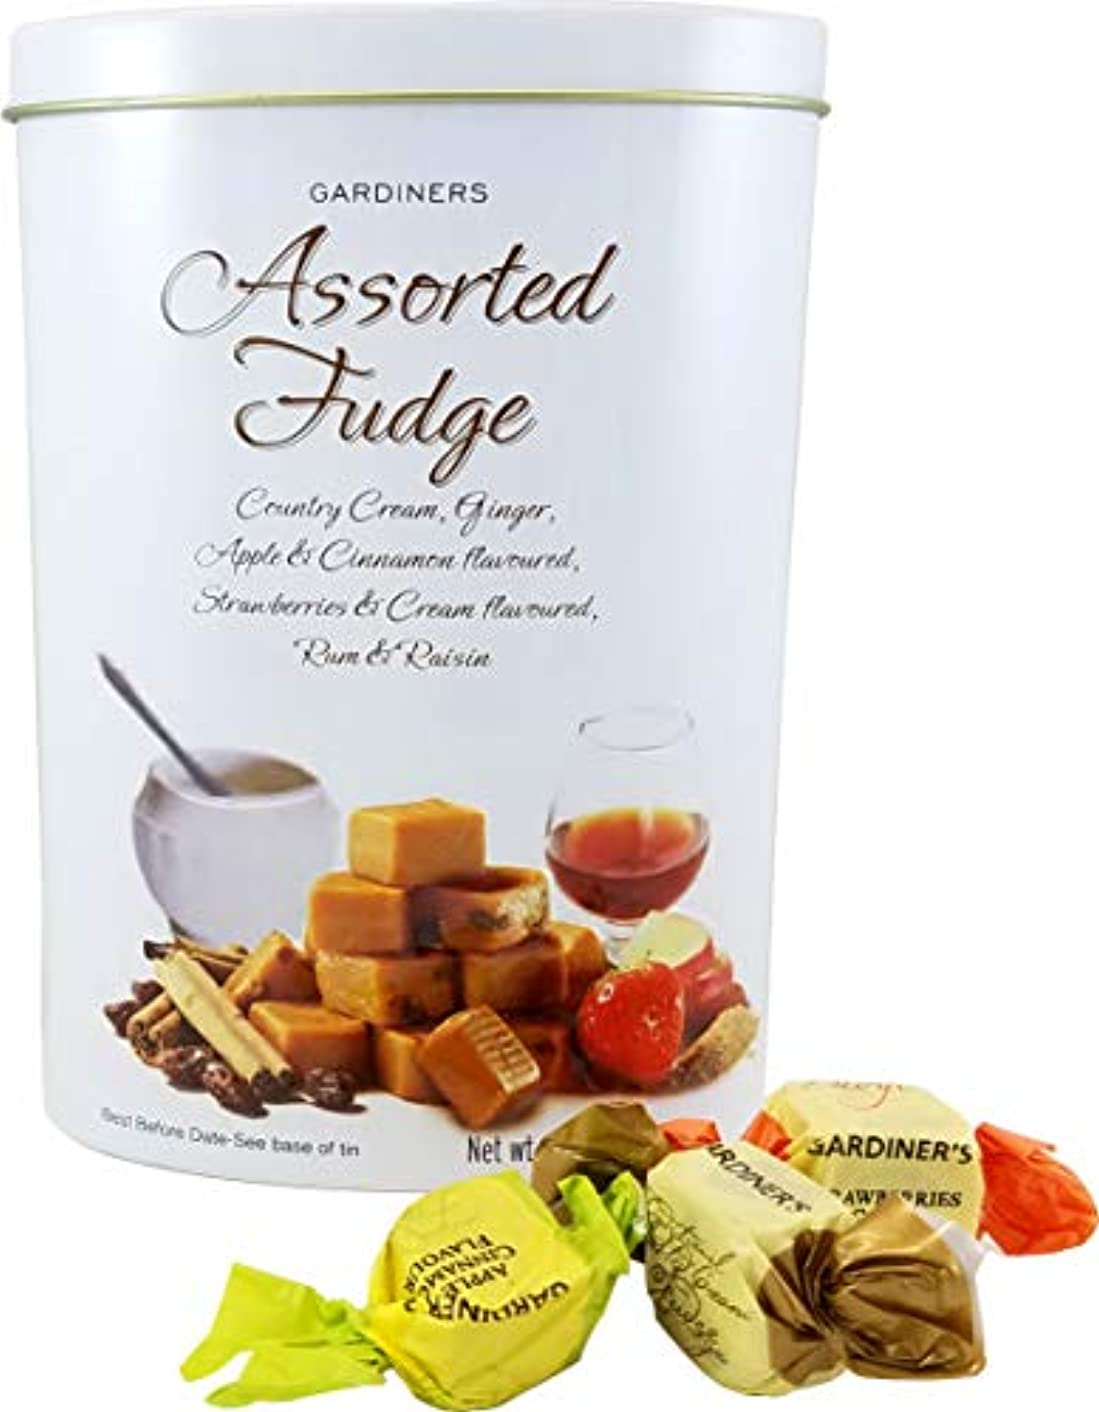 Gardiners of  Scotland Assorted Fudge Tin, 10.7-Ounce nwvgvnqq85852677